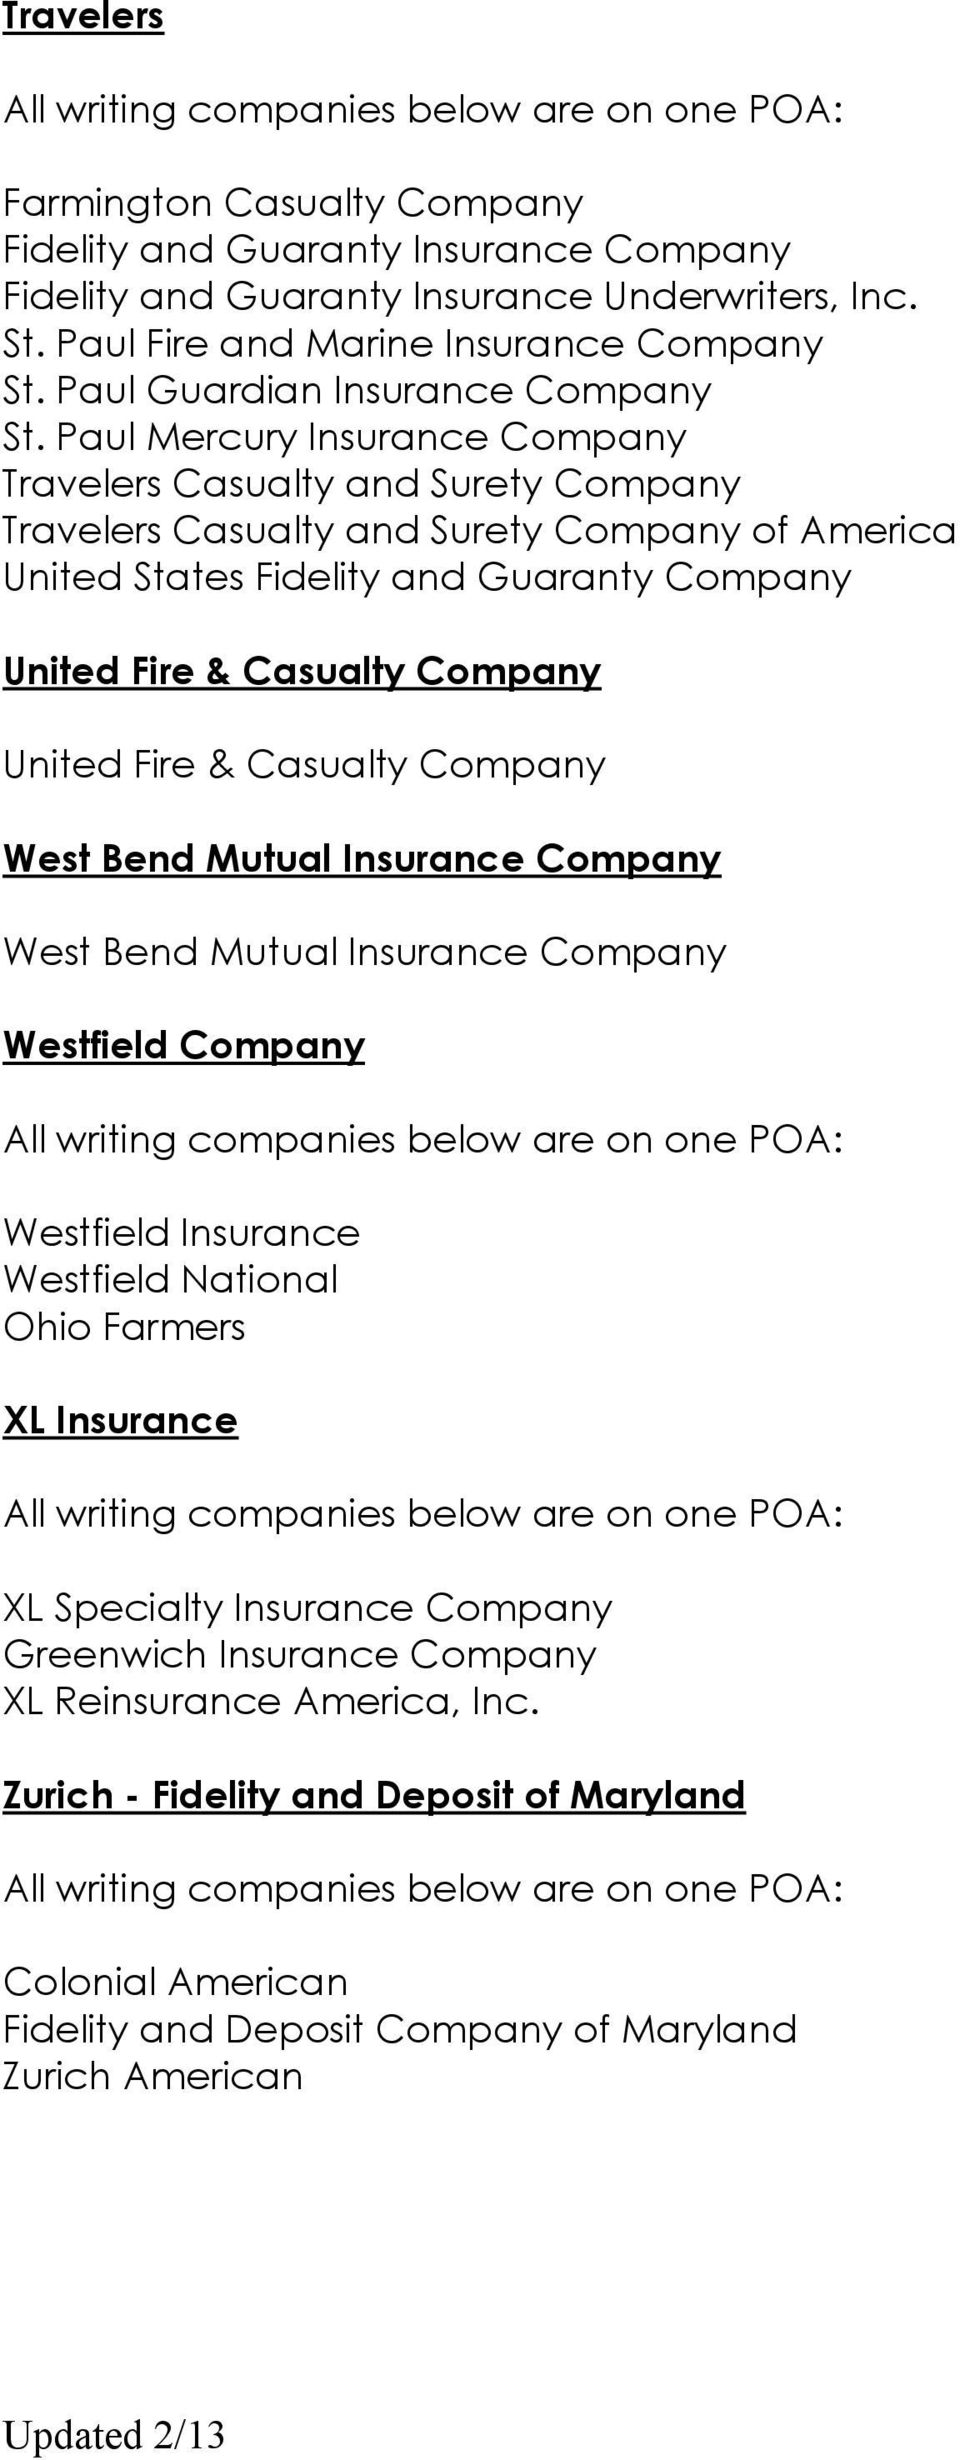 Paul Mercury Insurance Company Travelers Casualty and Surety Company Travelers Casualty and Surety Company of America United States Fidelity and Guaranty Company United Fire & Casualty Company